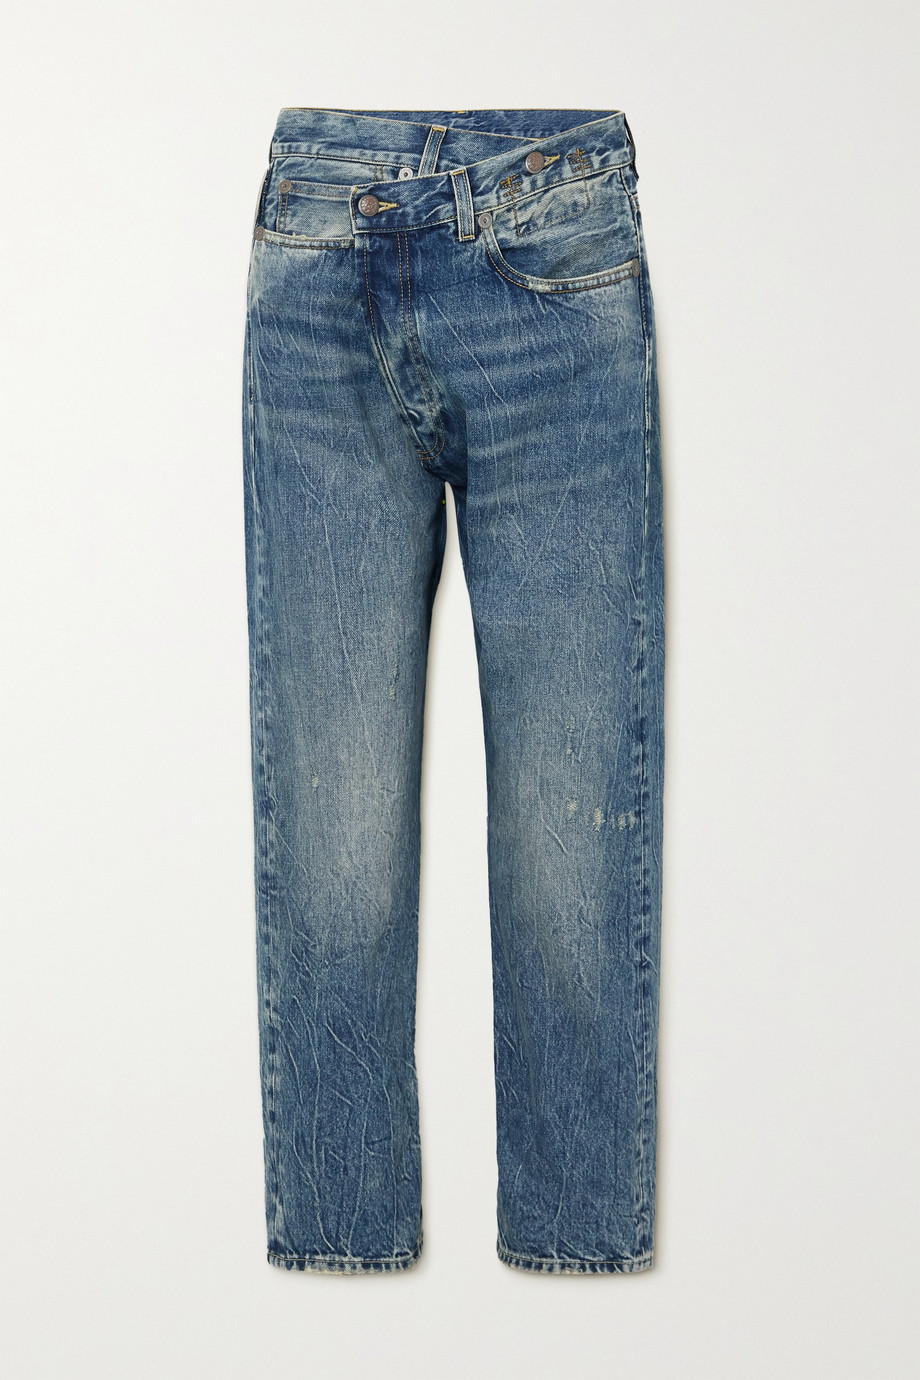 R13 Crossover asymmetrische Boyfriend-Jeans in Distressed-Optik